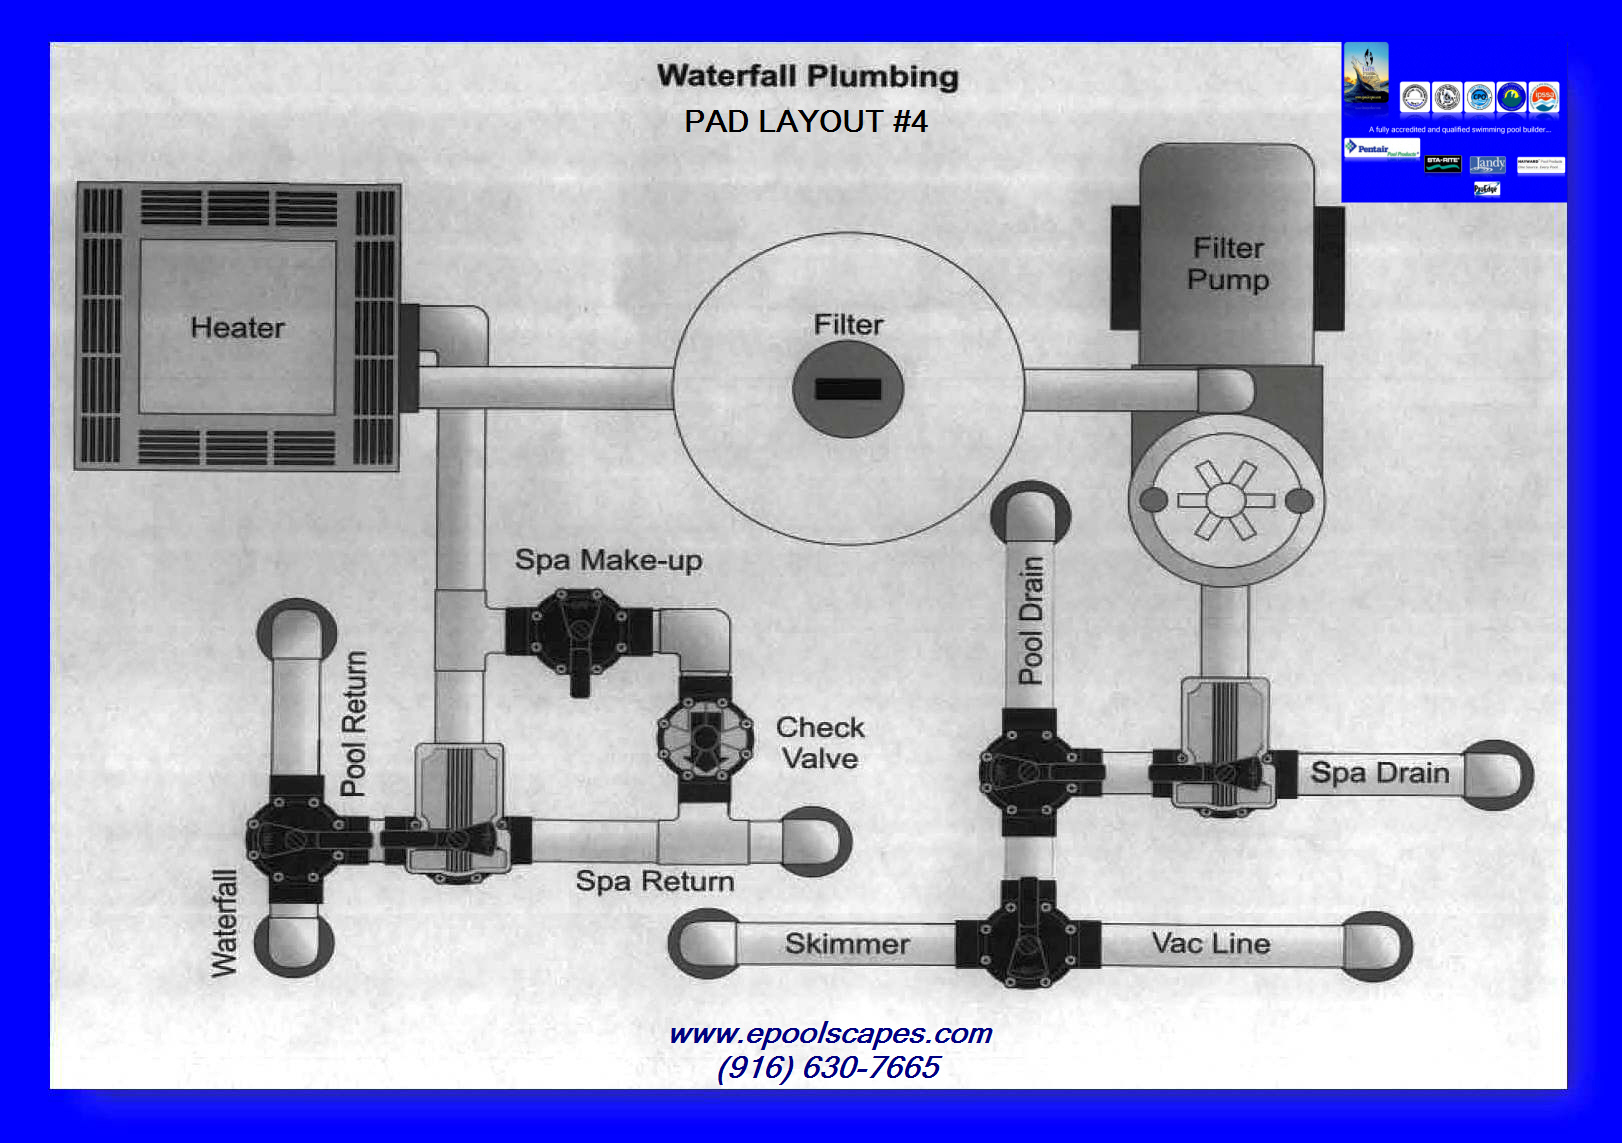 Pool plumbing layout diagram wiring diagram for Swimming pool equipment layout